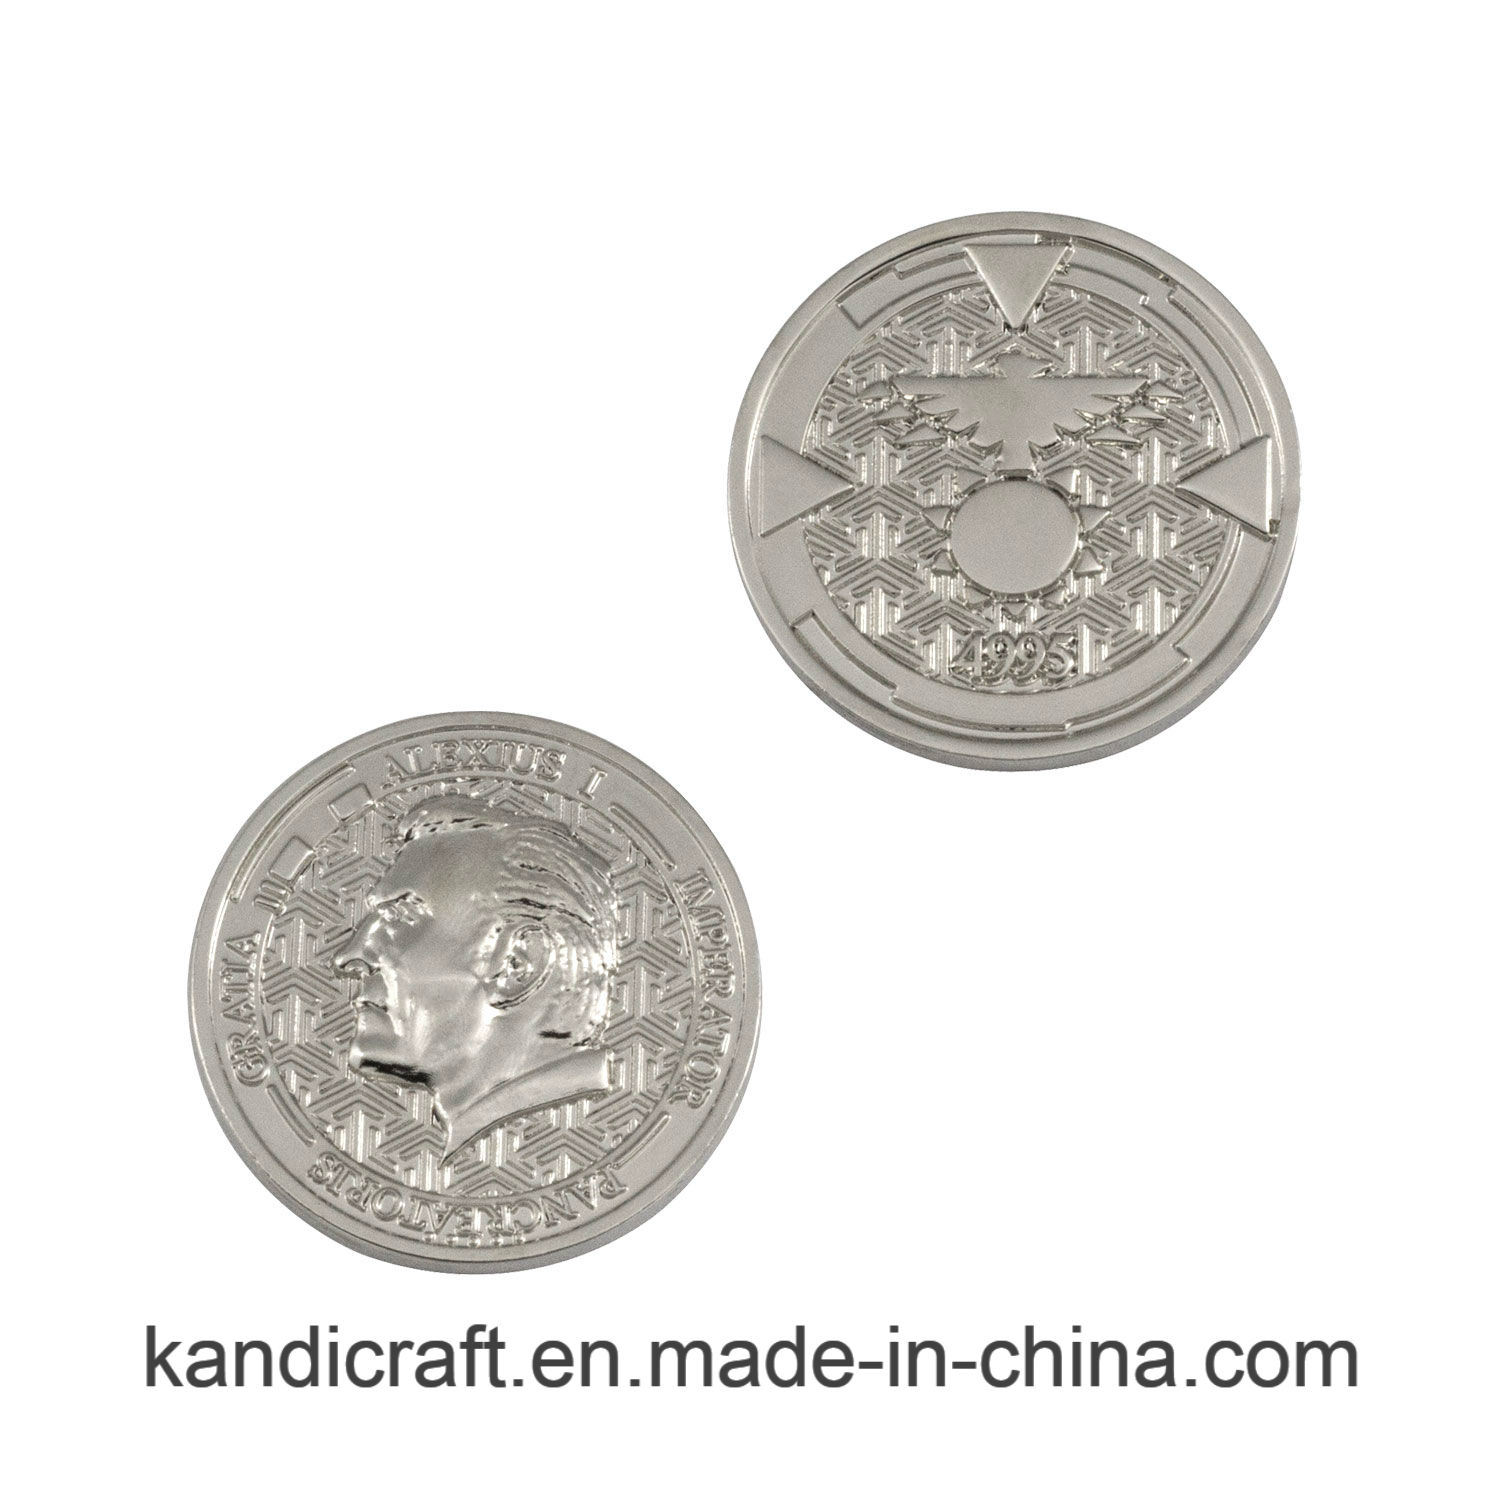 High Quality Arts and Metal Coin for Challenge Gift